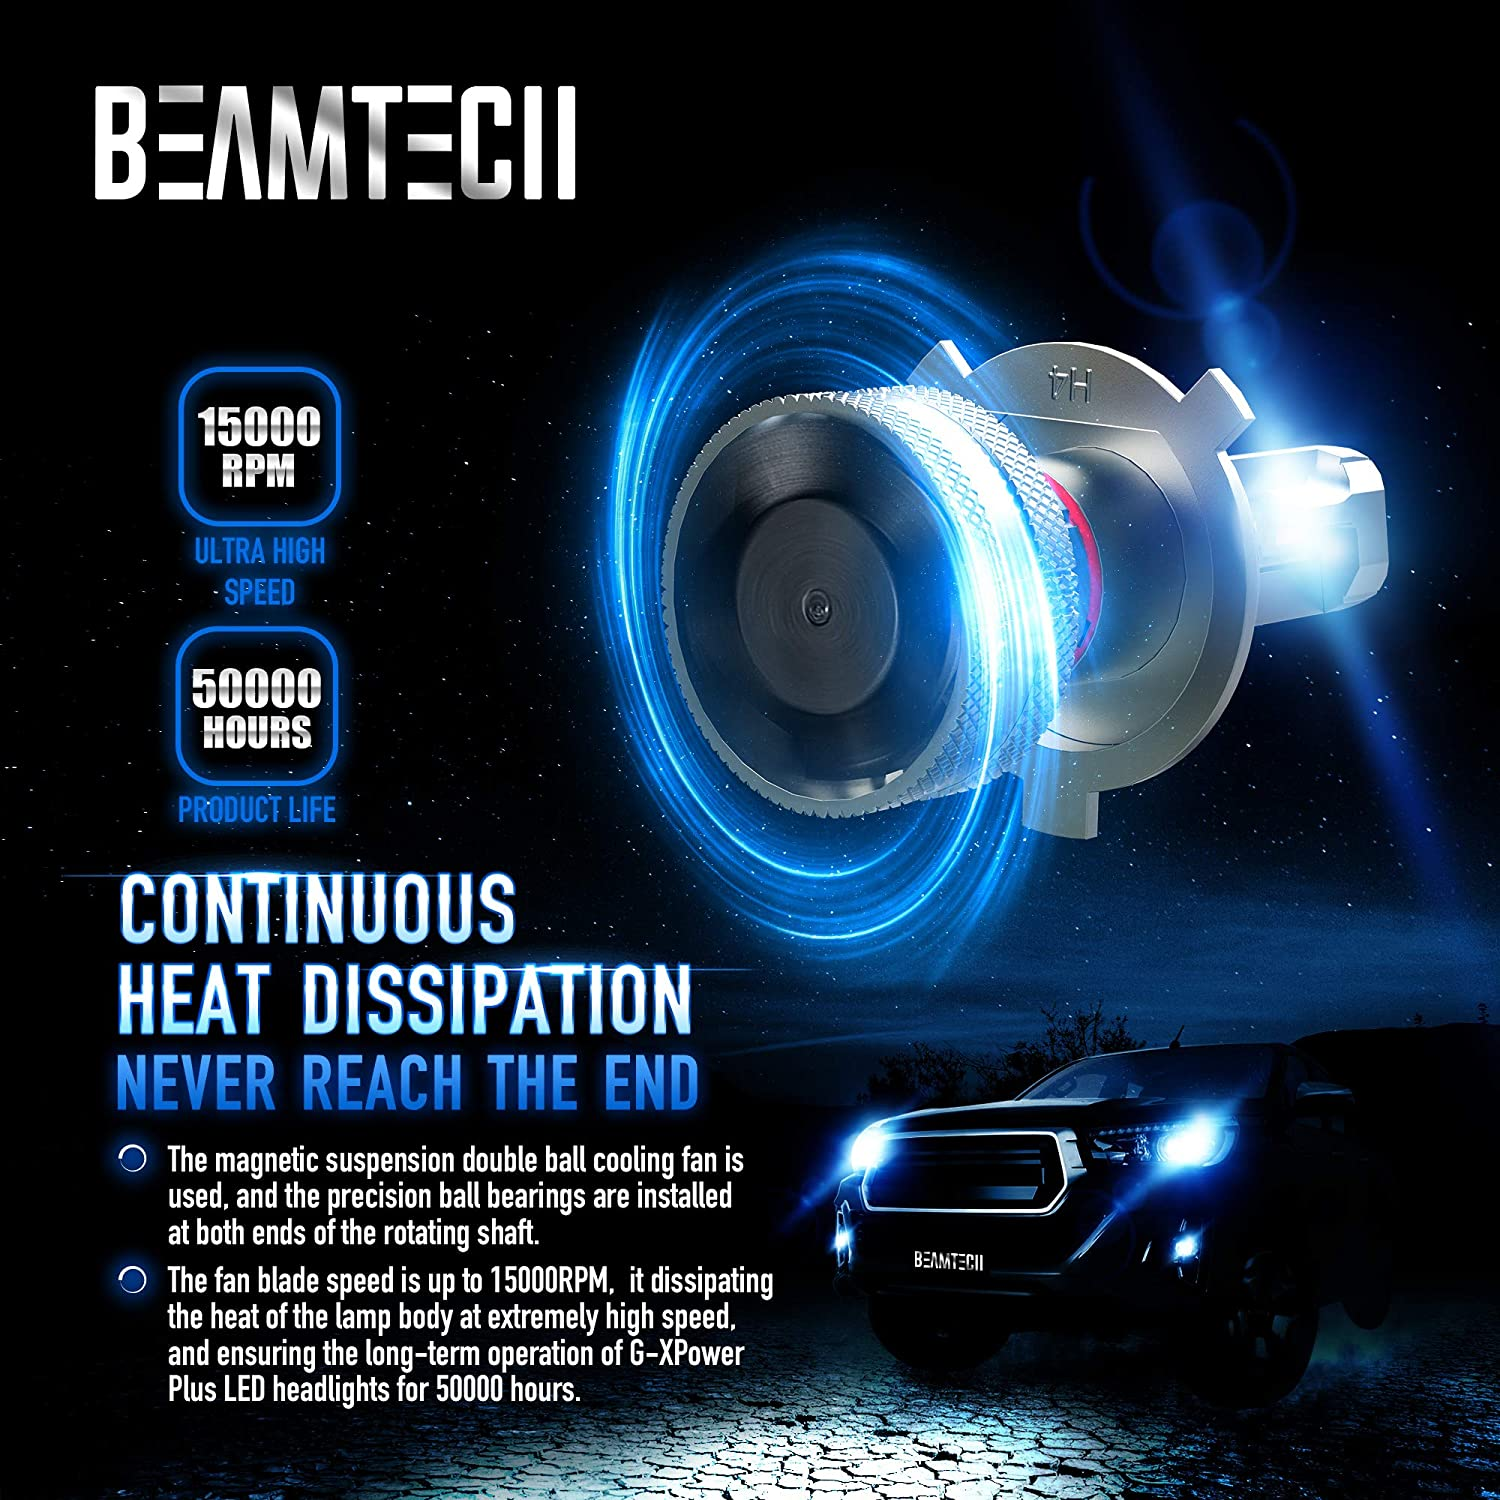 9003 G-XP Chips 110W 14000LM 6500K High Power Xenon White/ Conversion Kits of 2 BEAMTECH H4 LED Headlight Bulb